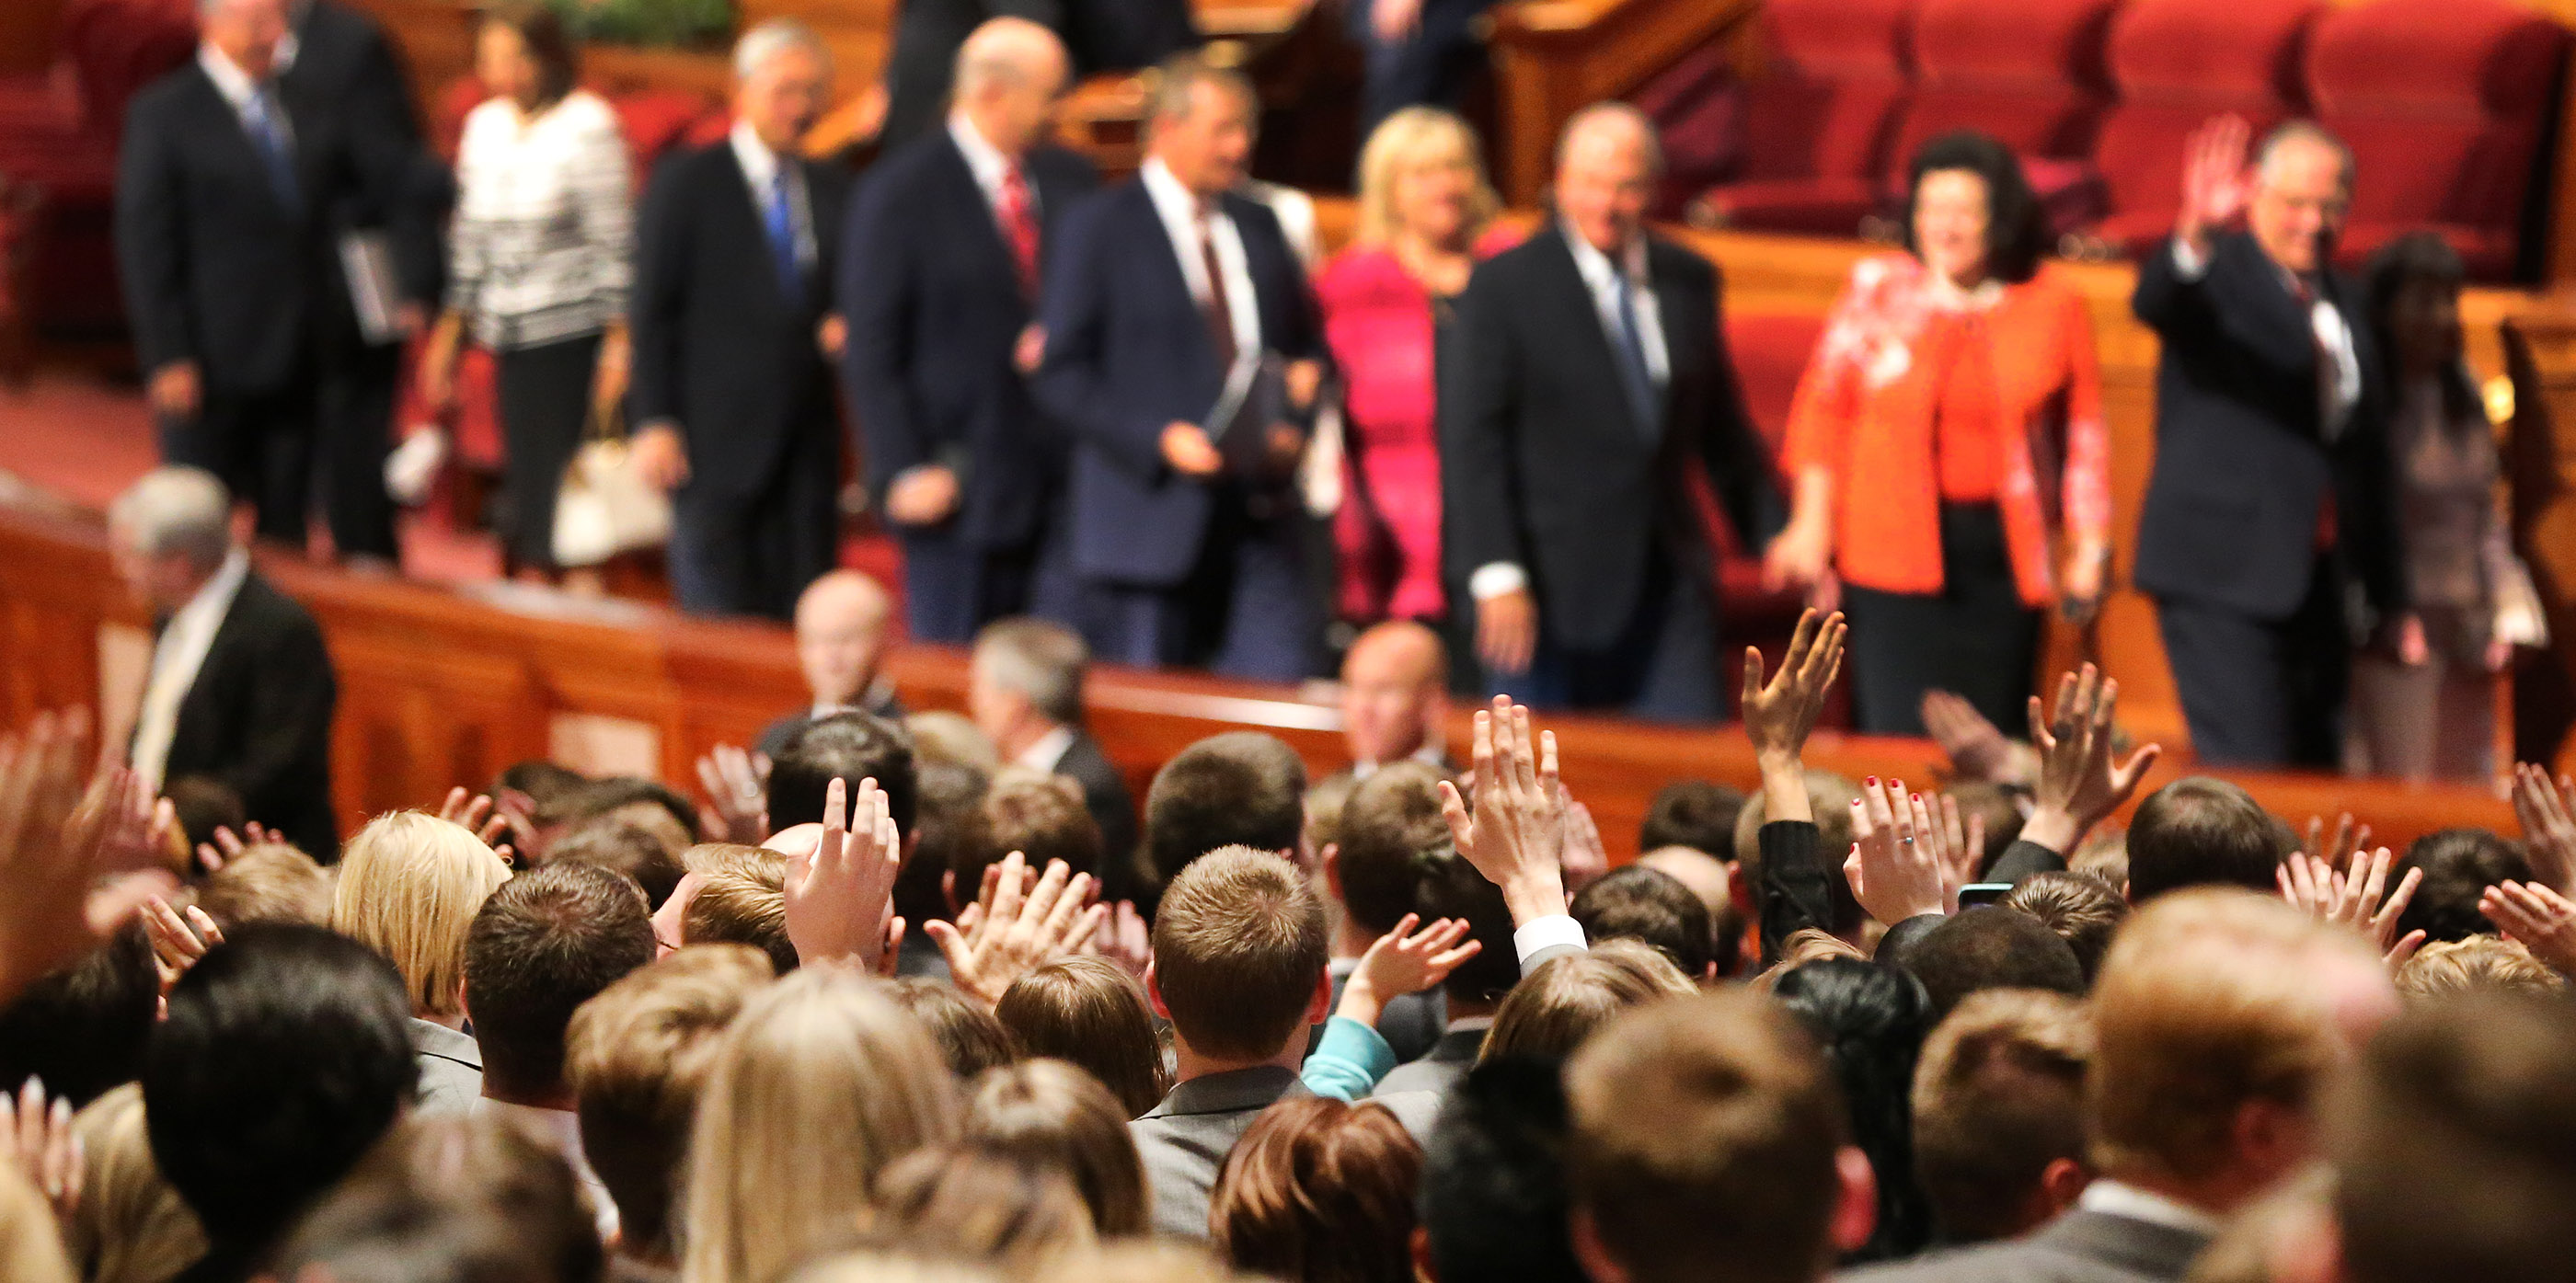 Attendees wave to general authorities after the Saturday afternoon session of the 188th Semiannual General Conference of The Church of Jesus Christ of Latter-day Saints in the Conference Center in downtown Salt Lake City on Sunday, Oct. 7, 2018.